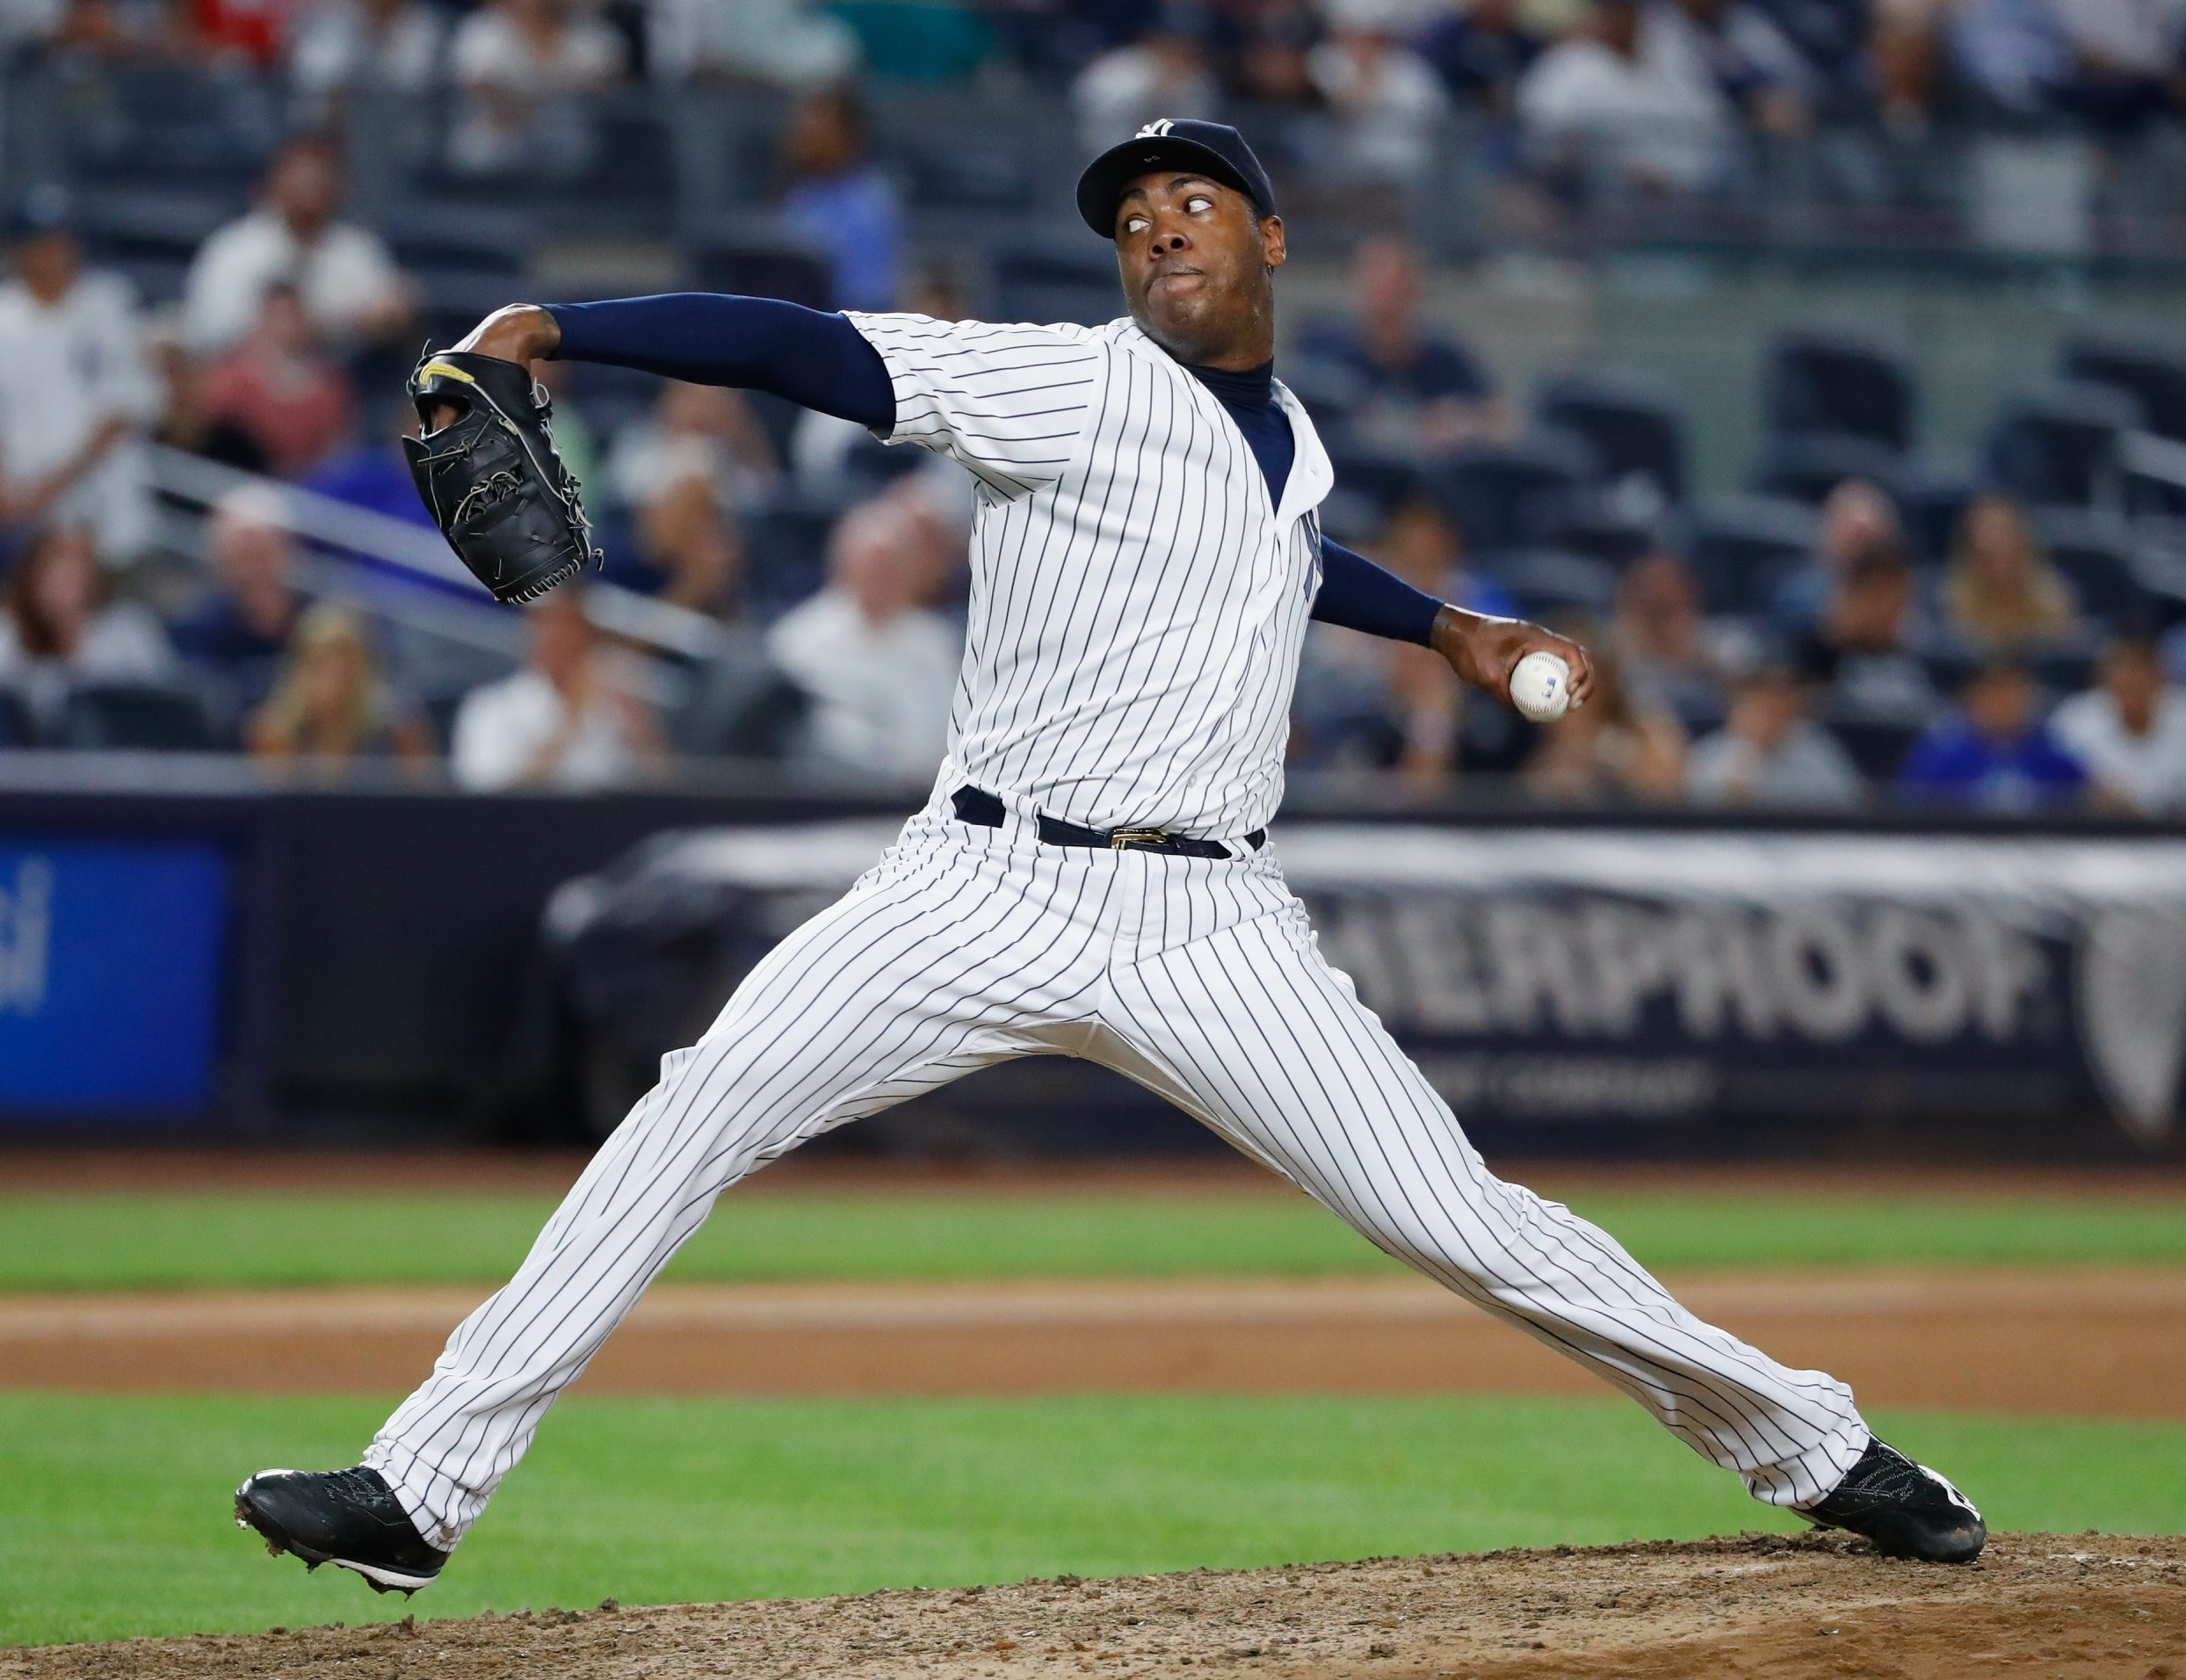 Should the Yankees decide to sell, closer Aroldis Chapman would be prime trade bait for a contender.